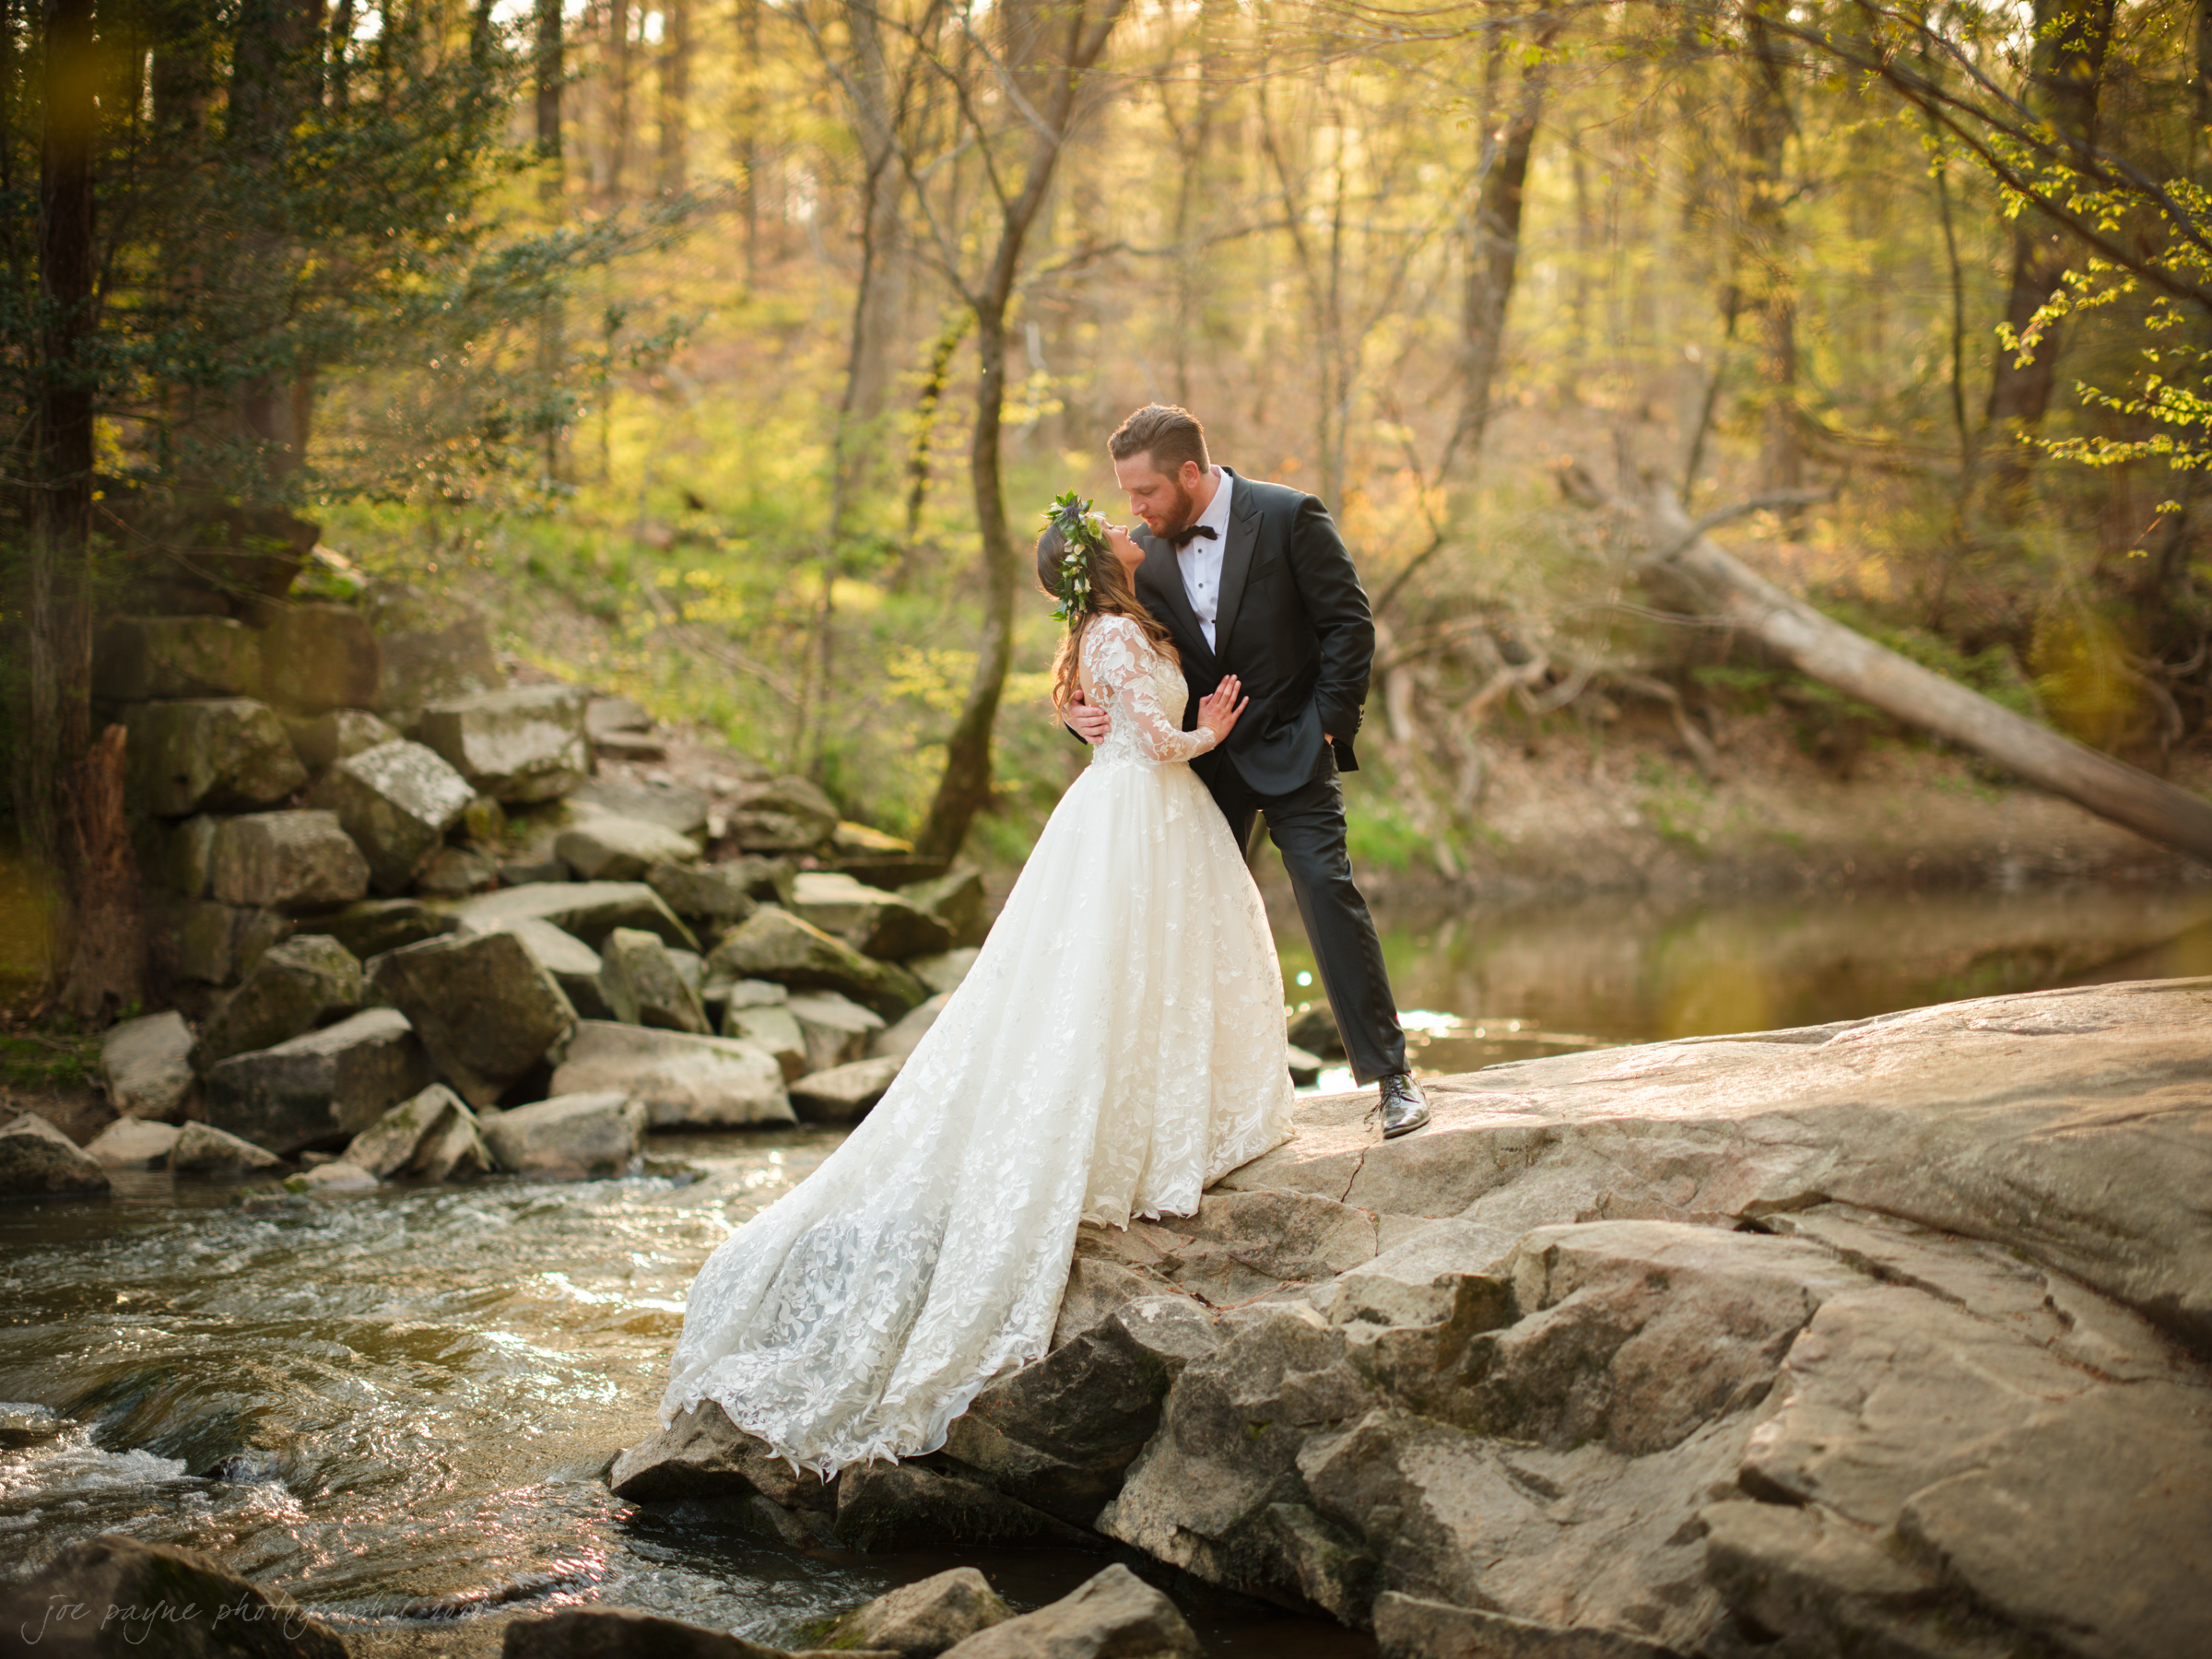 umstead-hotel-park-wedding-photography-brittany-harrison-34